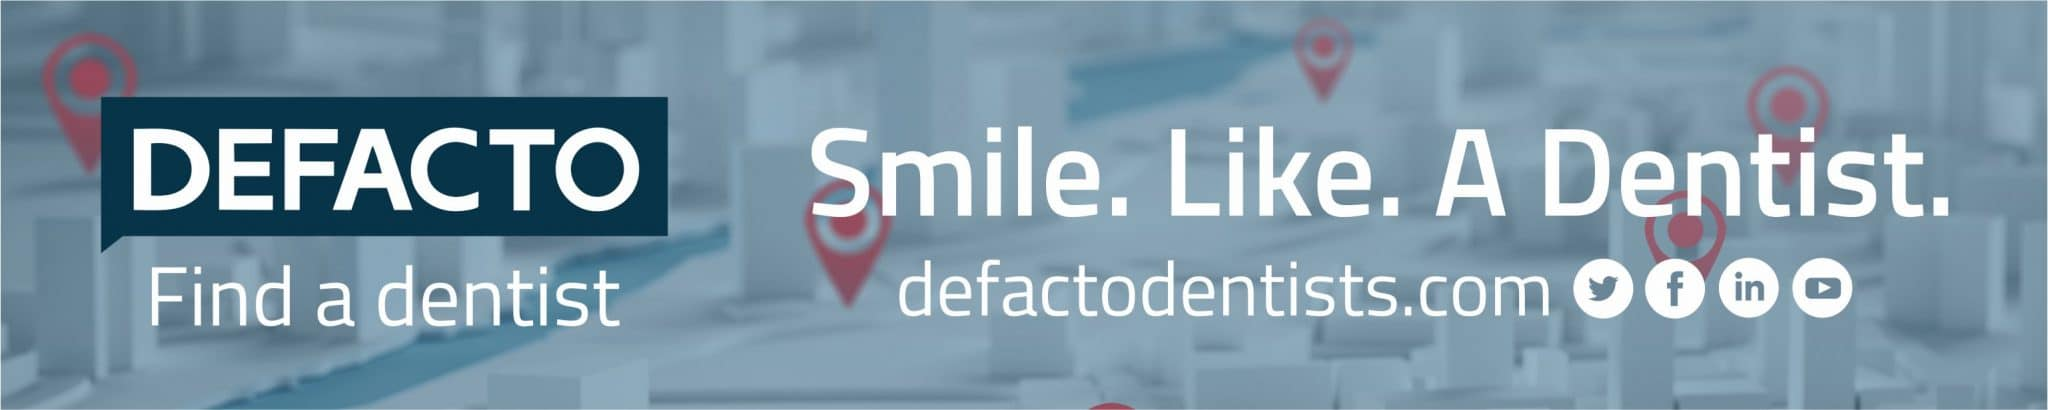 Defacto smile like a dentist banner1